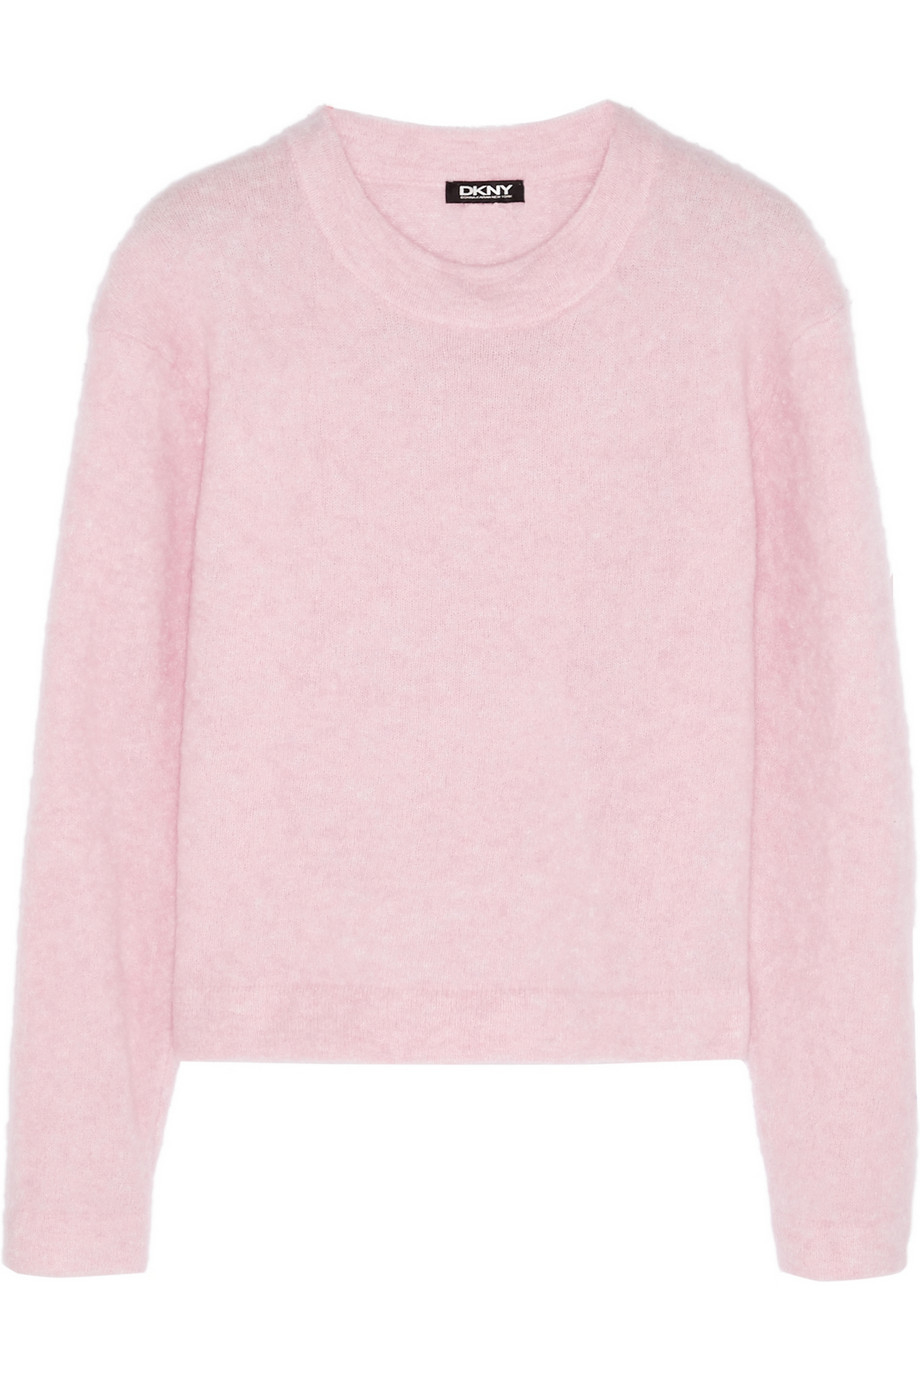 Dkny Cropped Knitted Sweater in Pink   Lyst